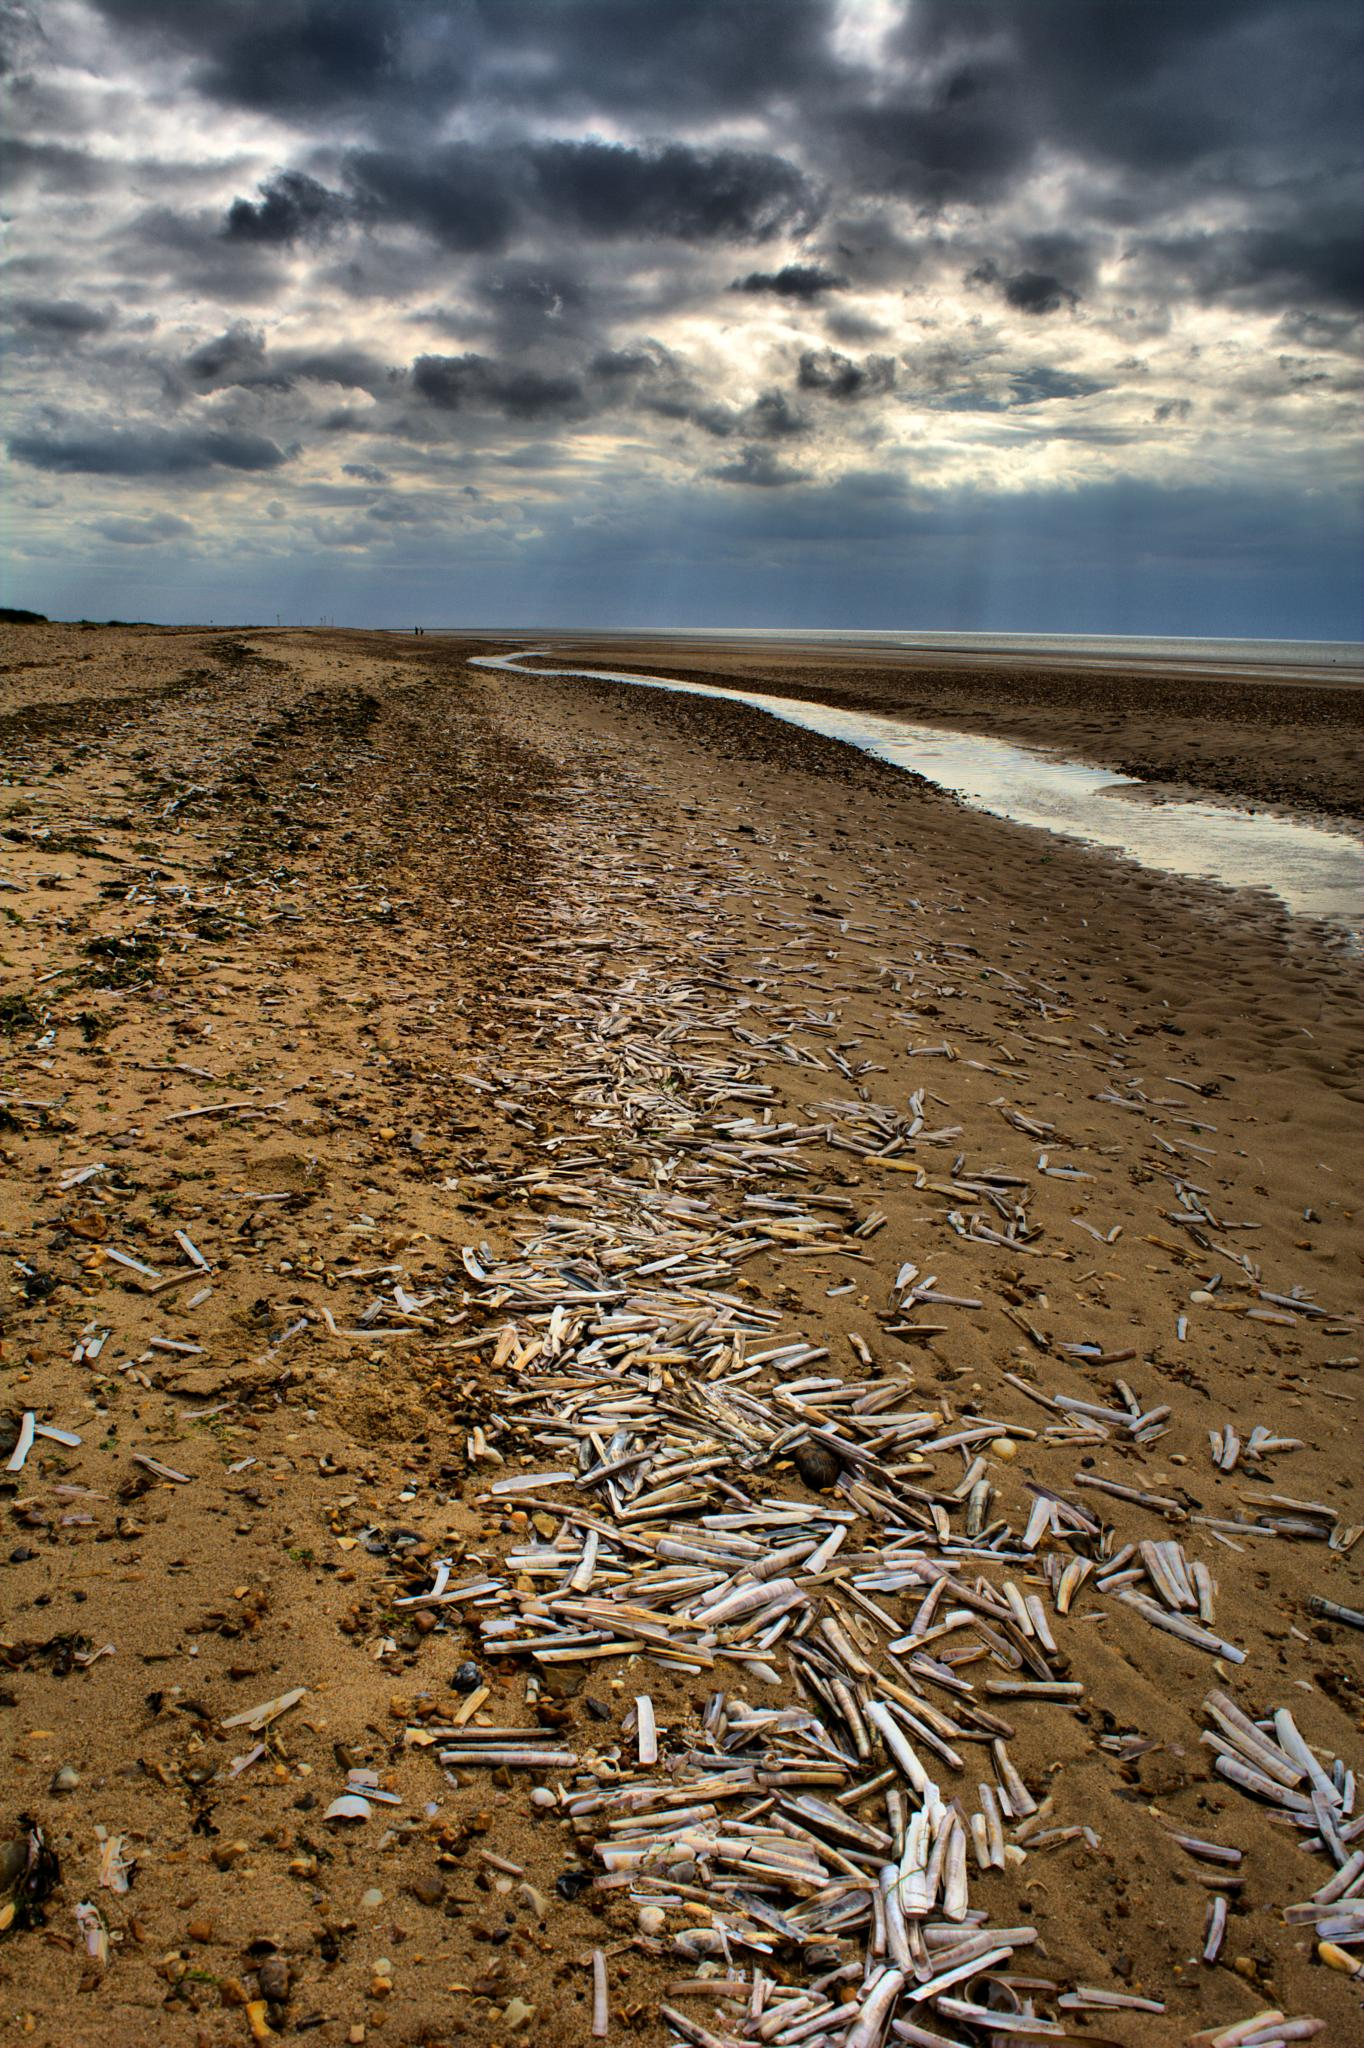 1000 shells on the shore by Dean kay